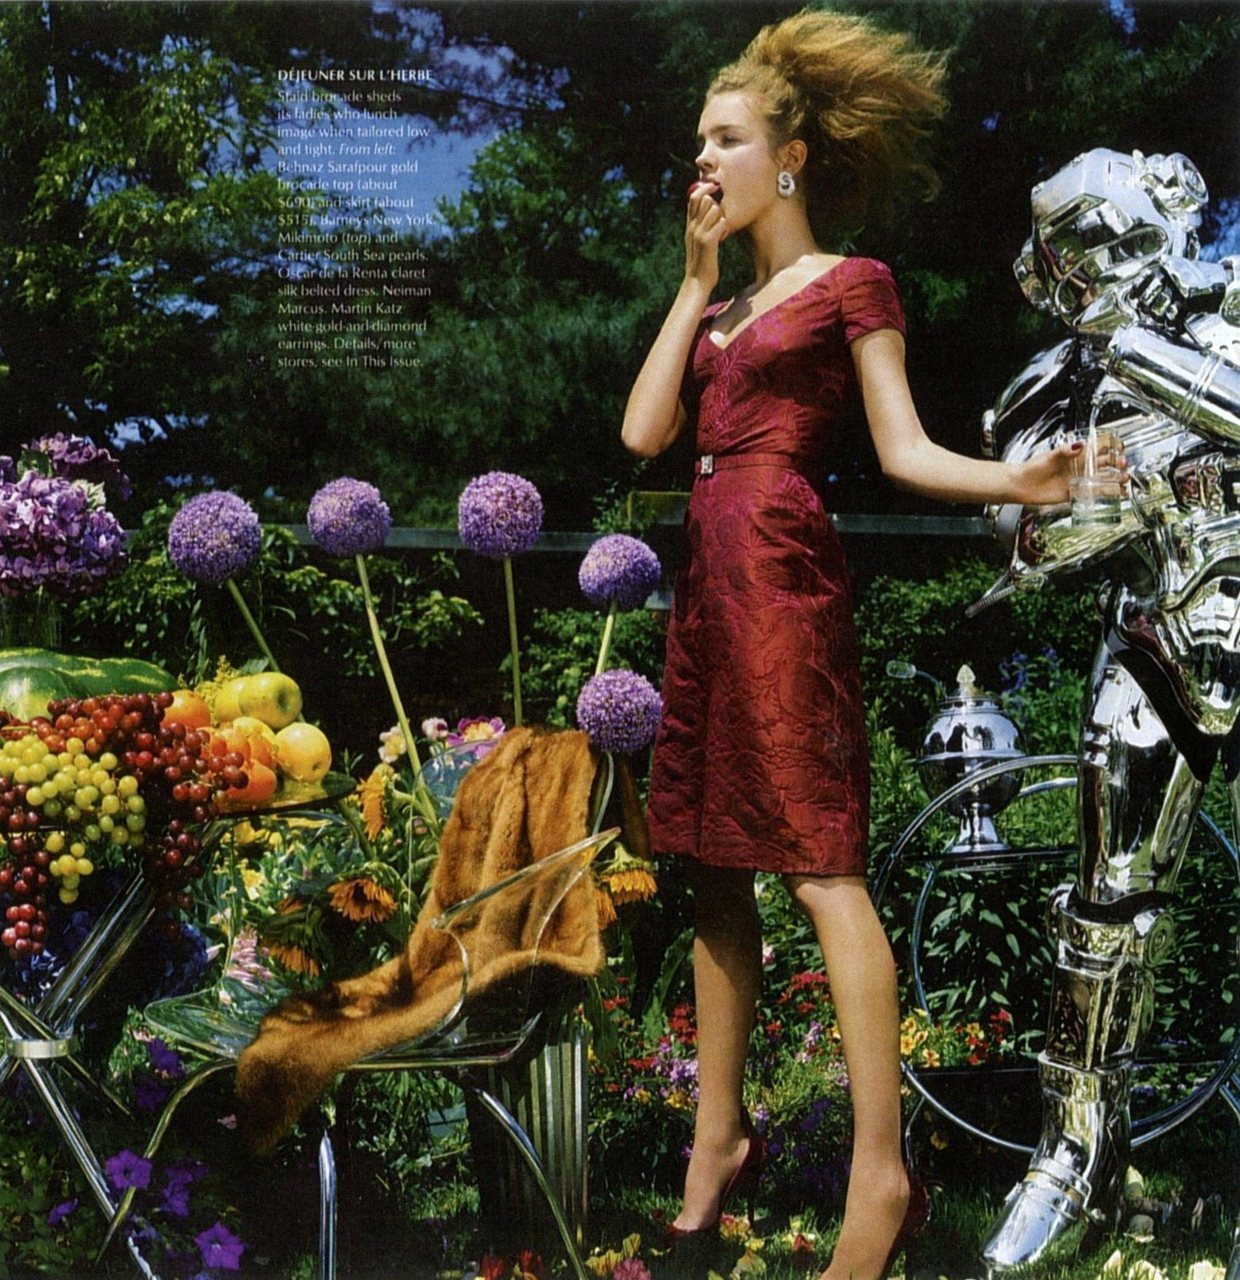 from Vogue, 2003. I'm interested in that hair.